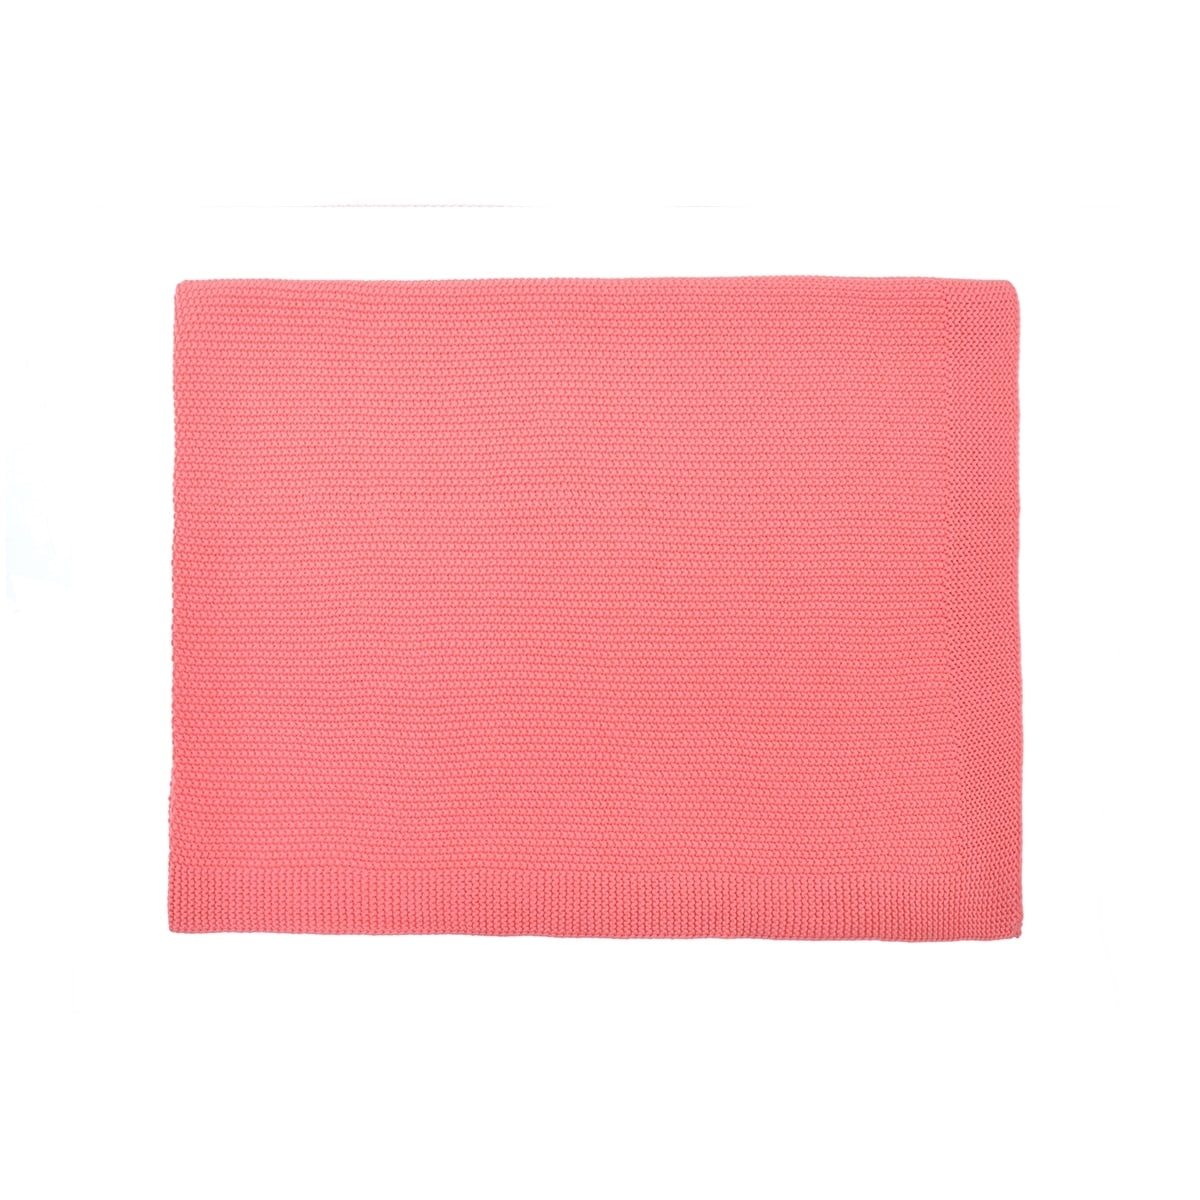 Couverture Bou Coral Pink